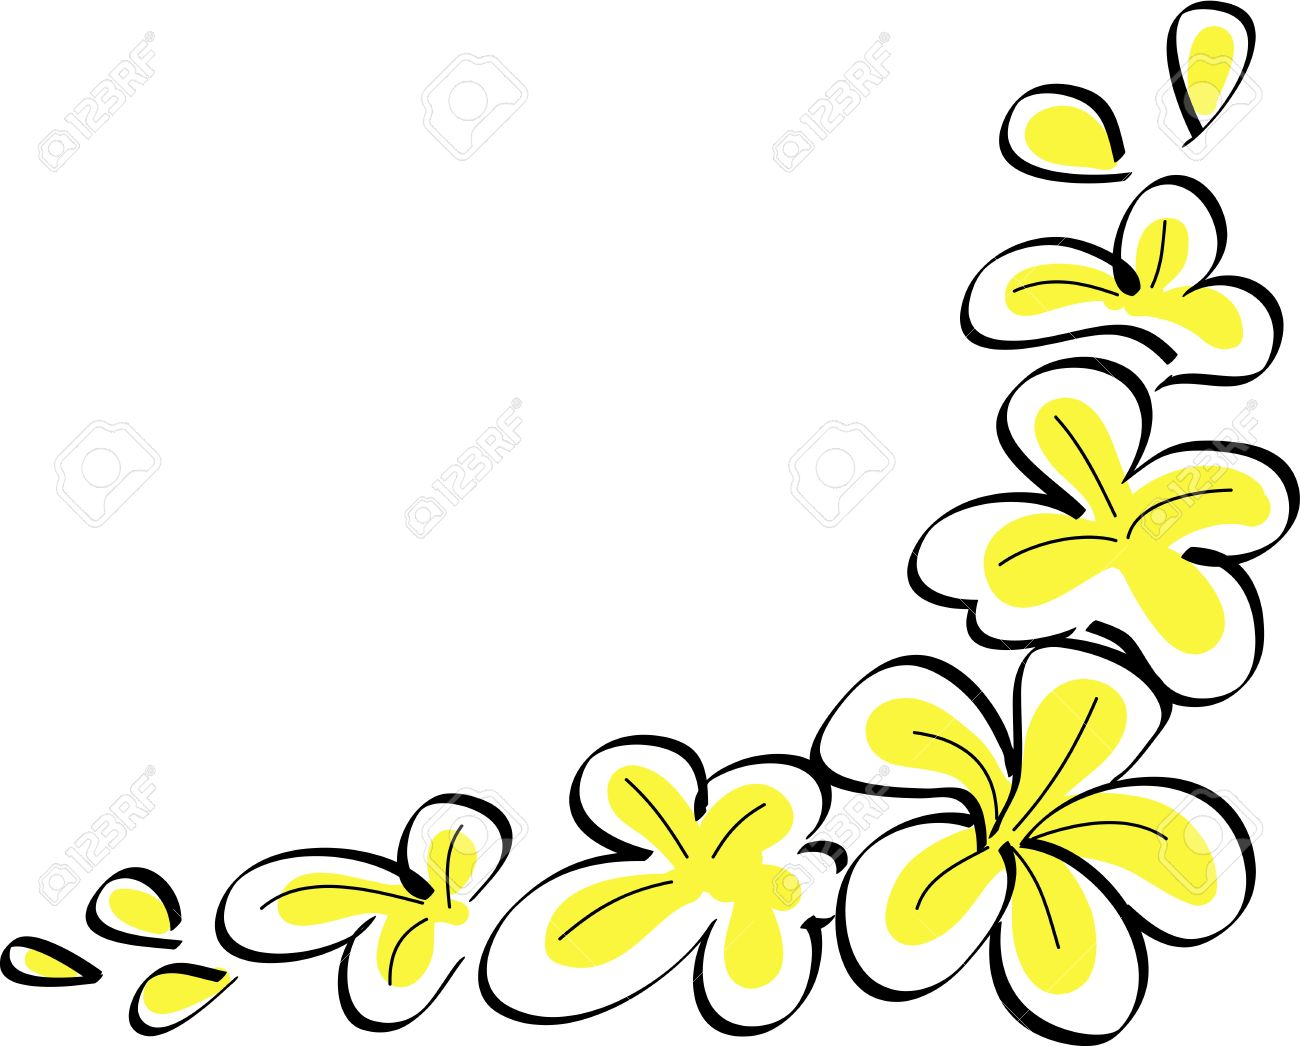 Drawing Tropical Plumeria Flowers Vector Royalty Free Cliparts Vectors And Stock Illustration Image 21424297